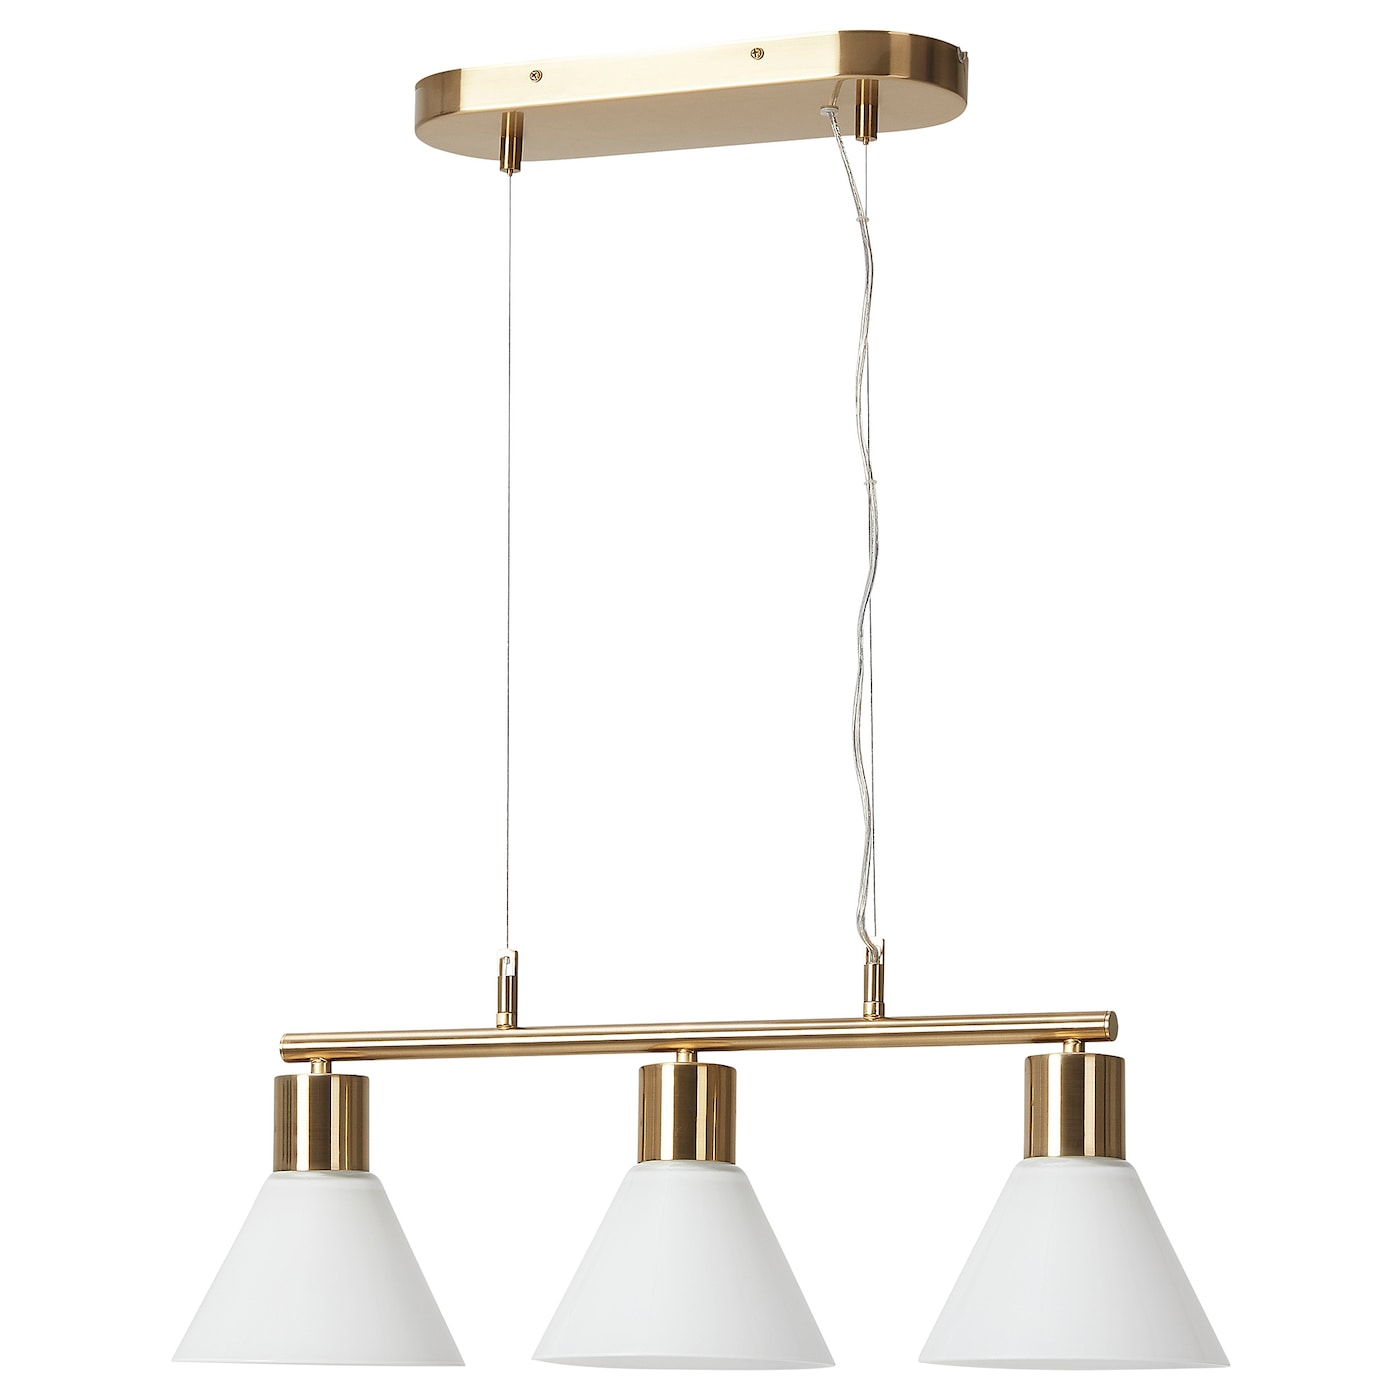 Flugbo Pendant Lamp With 3 Lamps